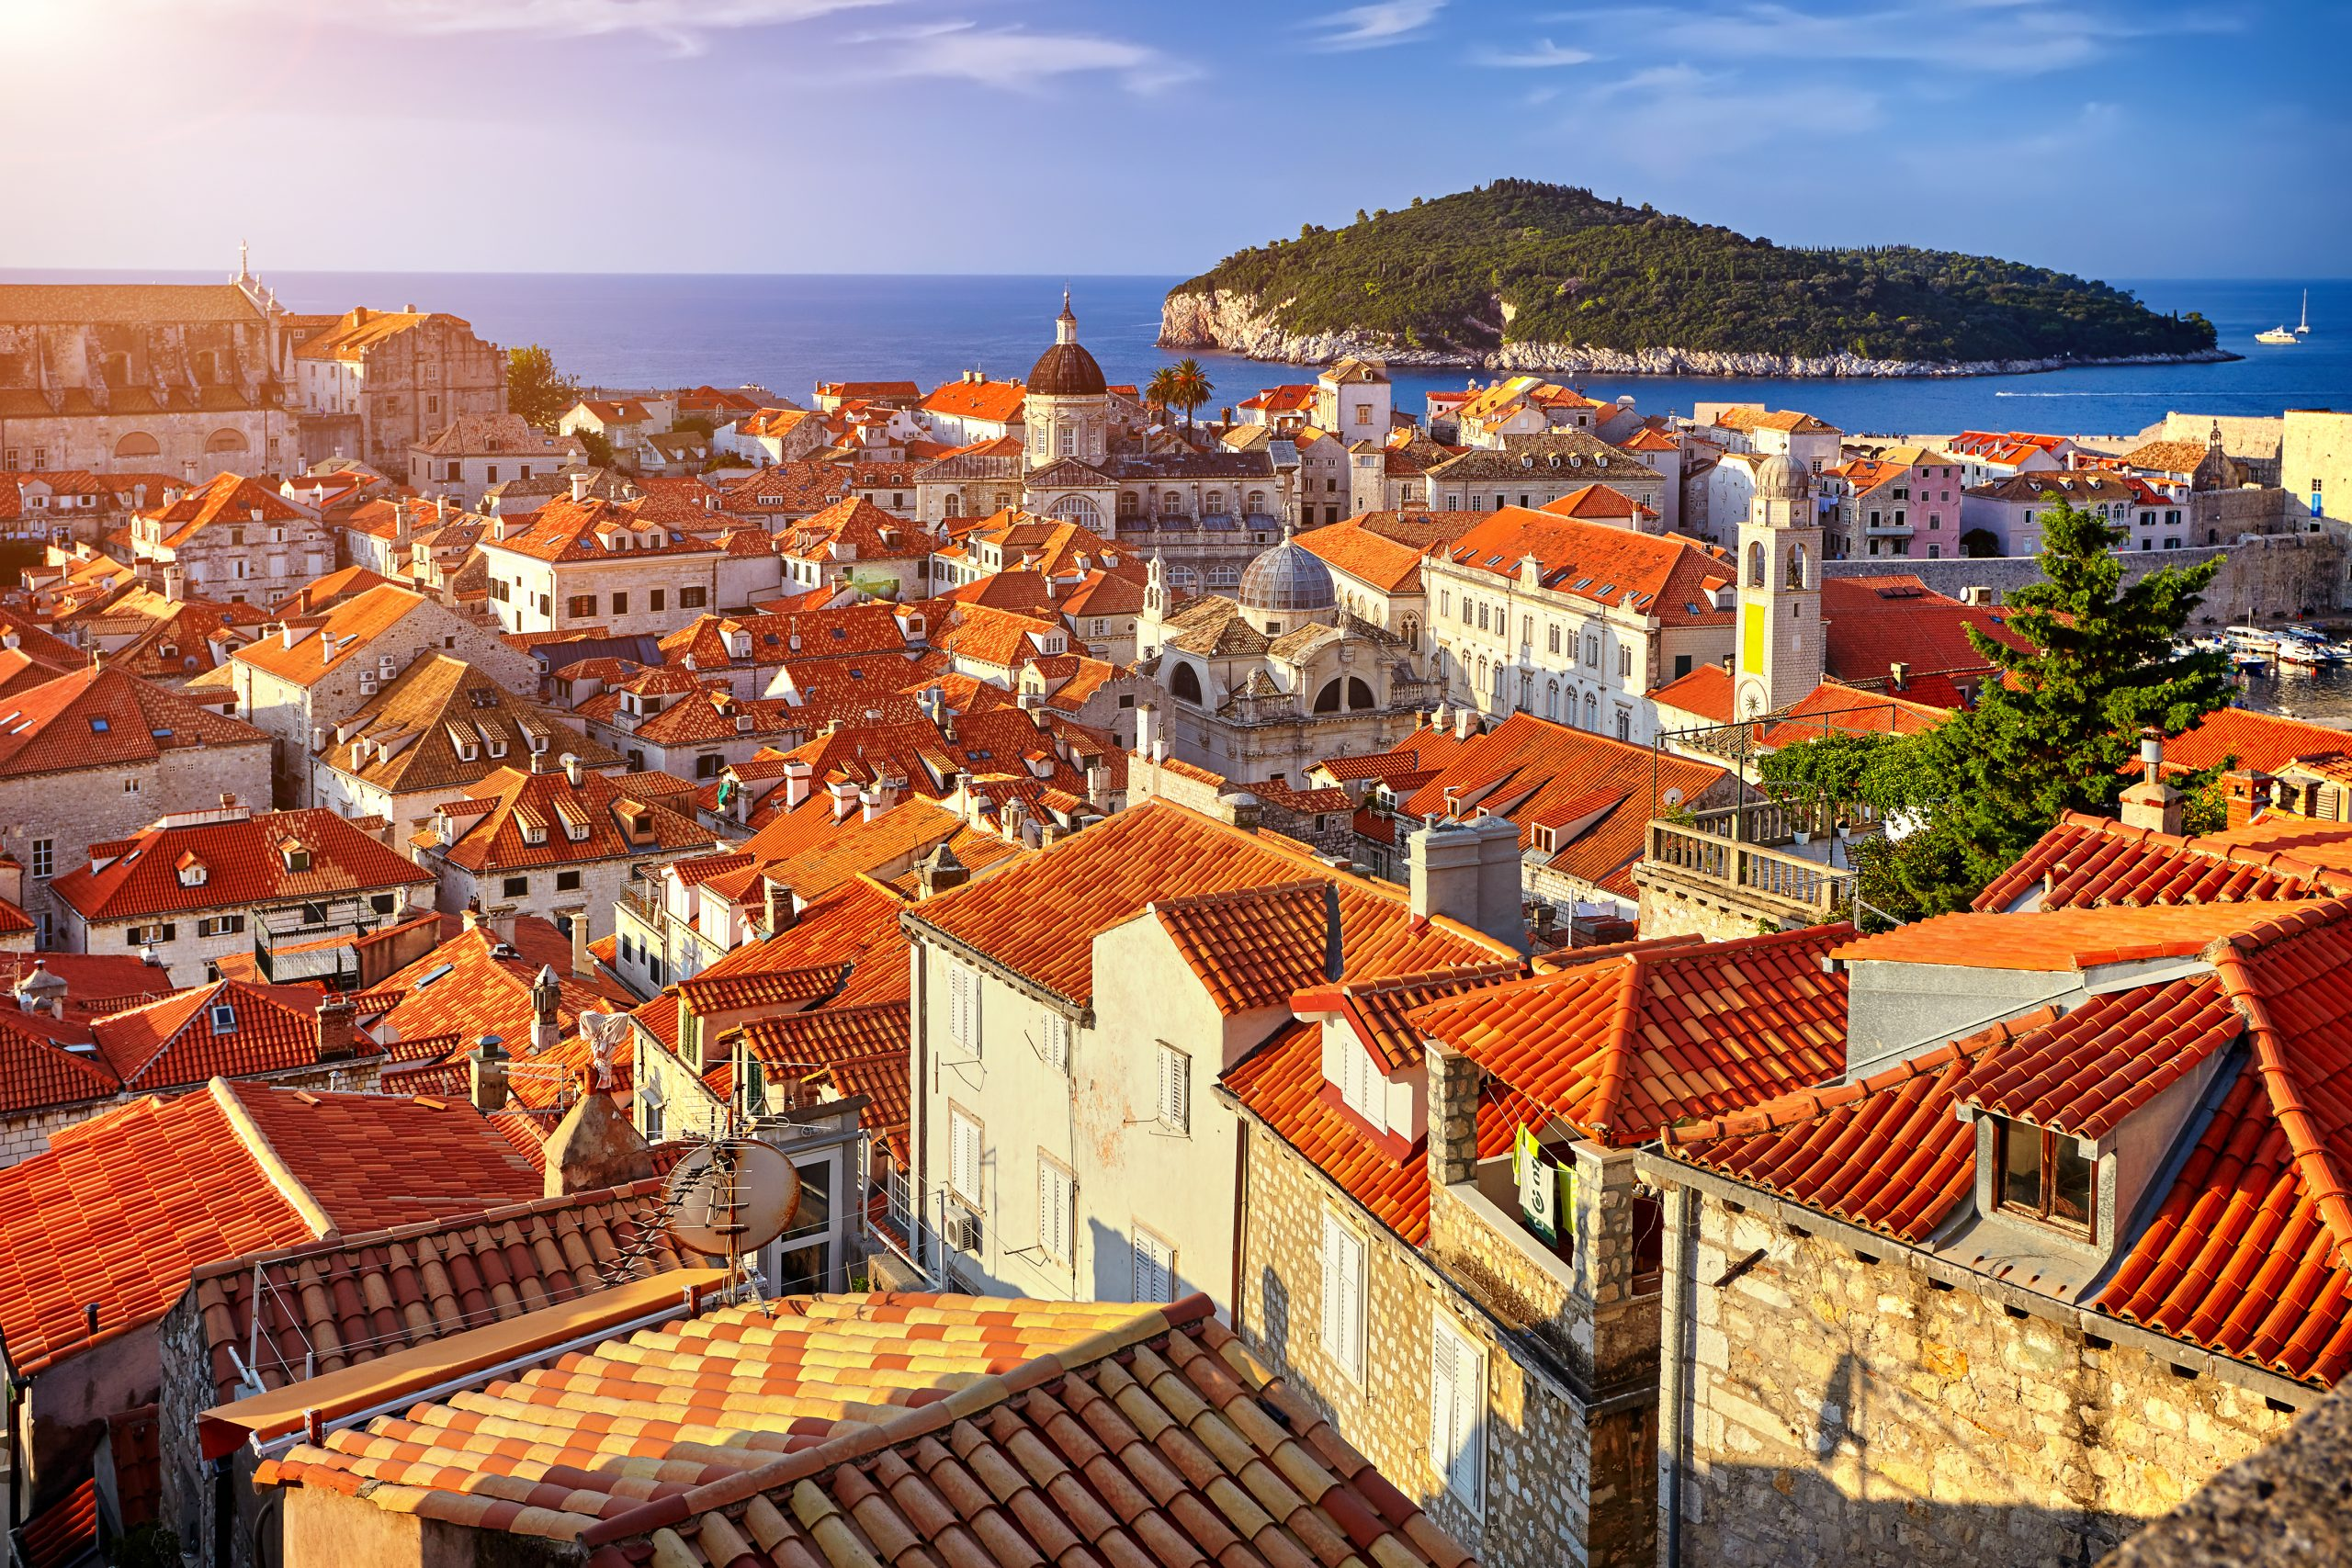 Getting To And From Dubrovnik Airport